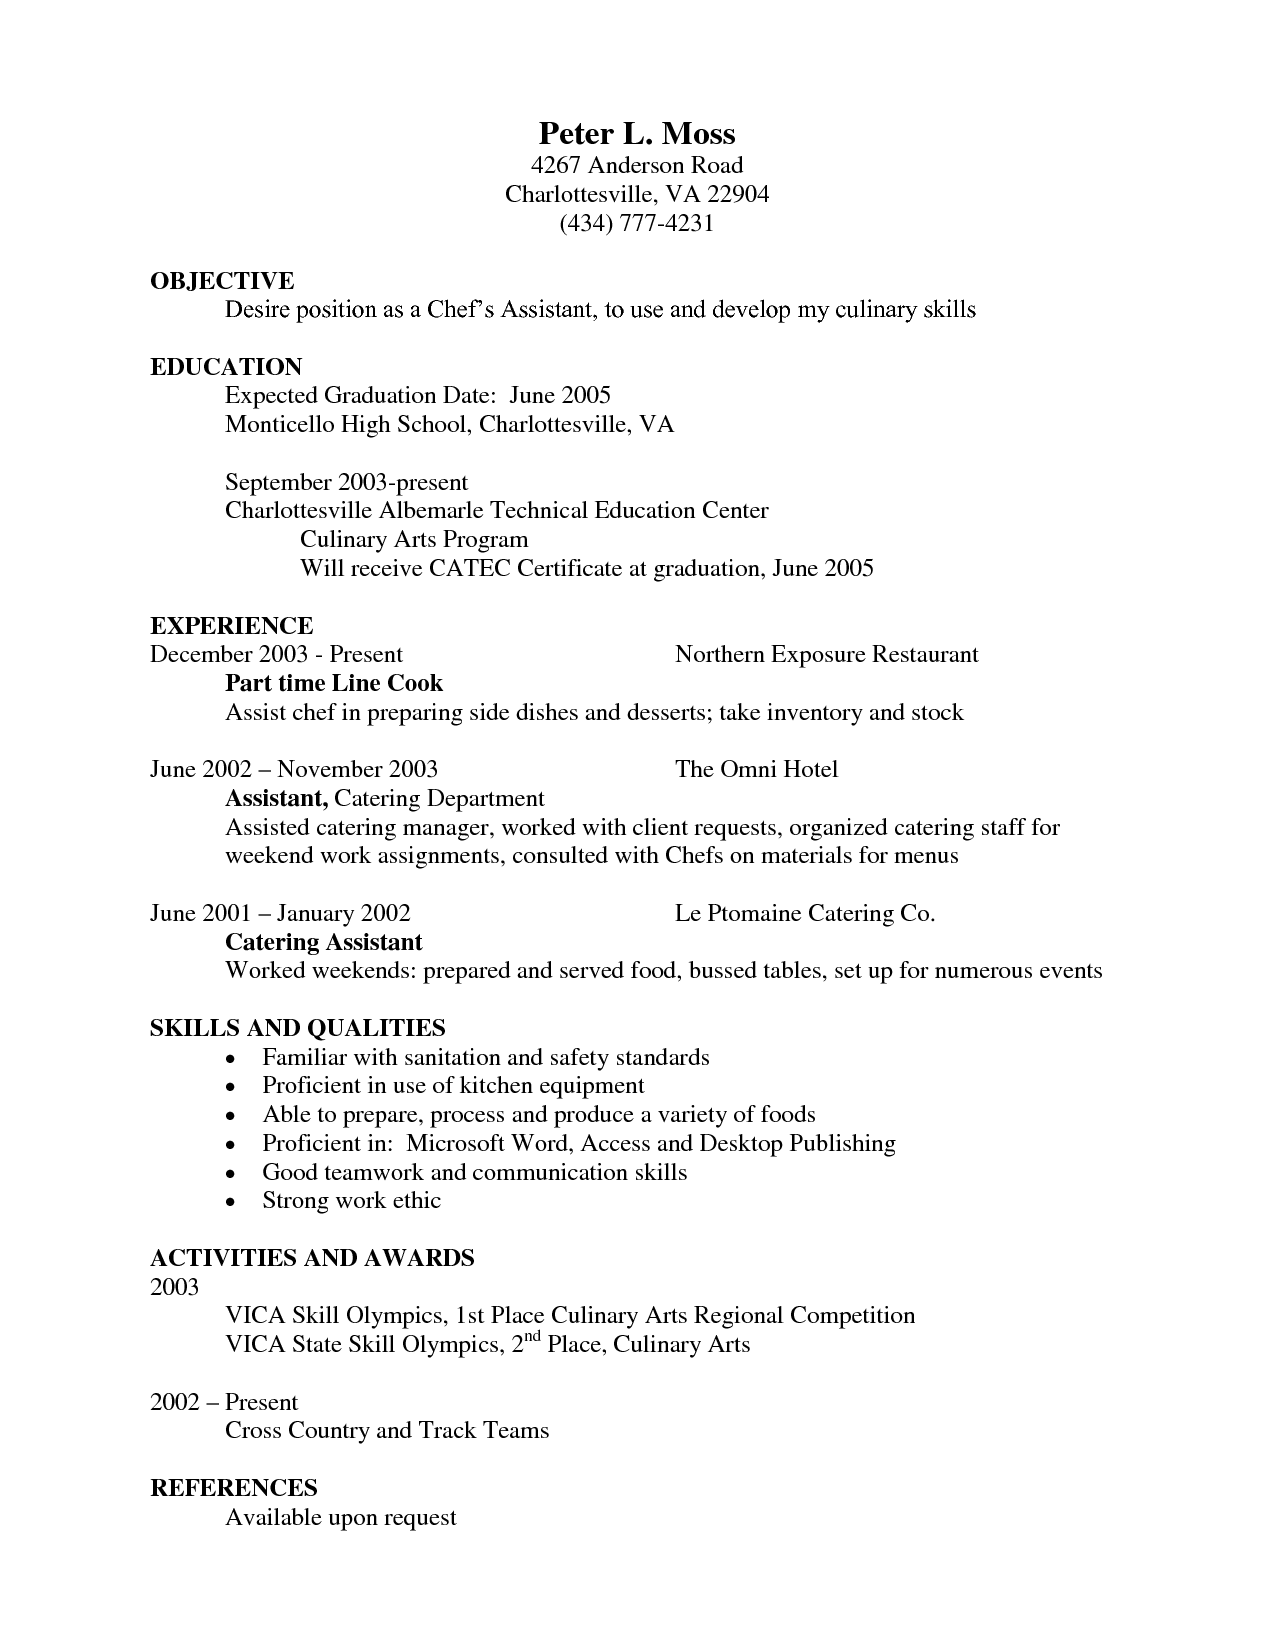 cook example resume sample for cooks cover letter | Chef ...